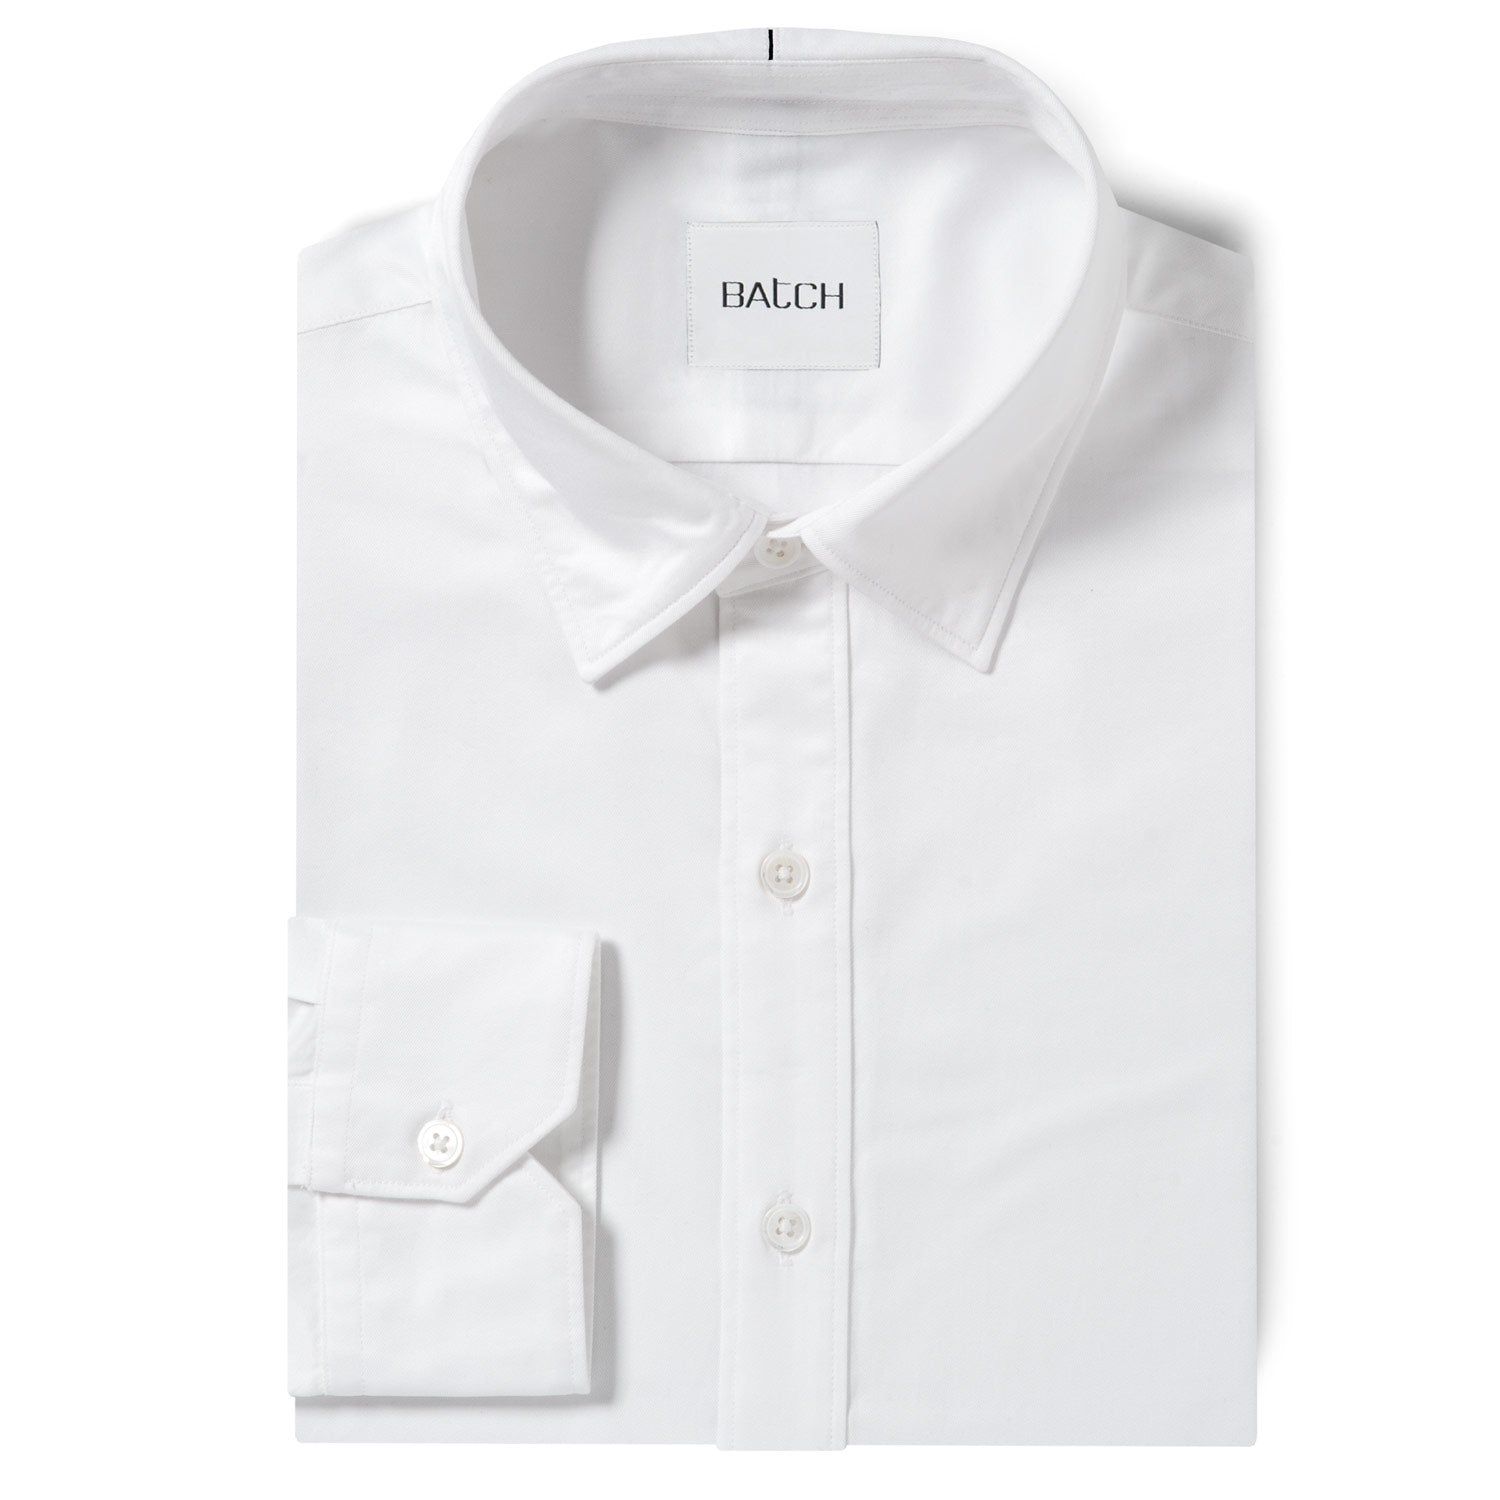 Essential SC Shirt No Pocket - Pure White Wrinkle Defiant Twill